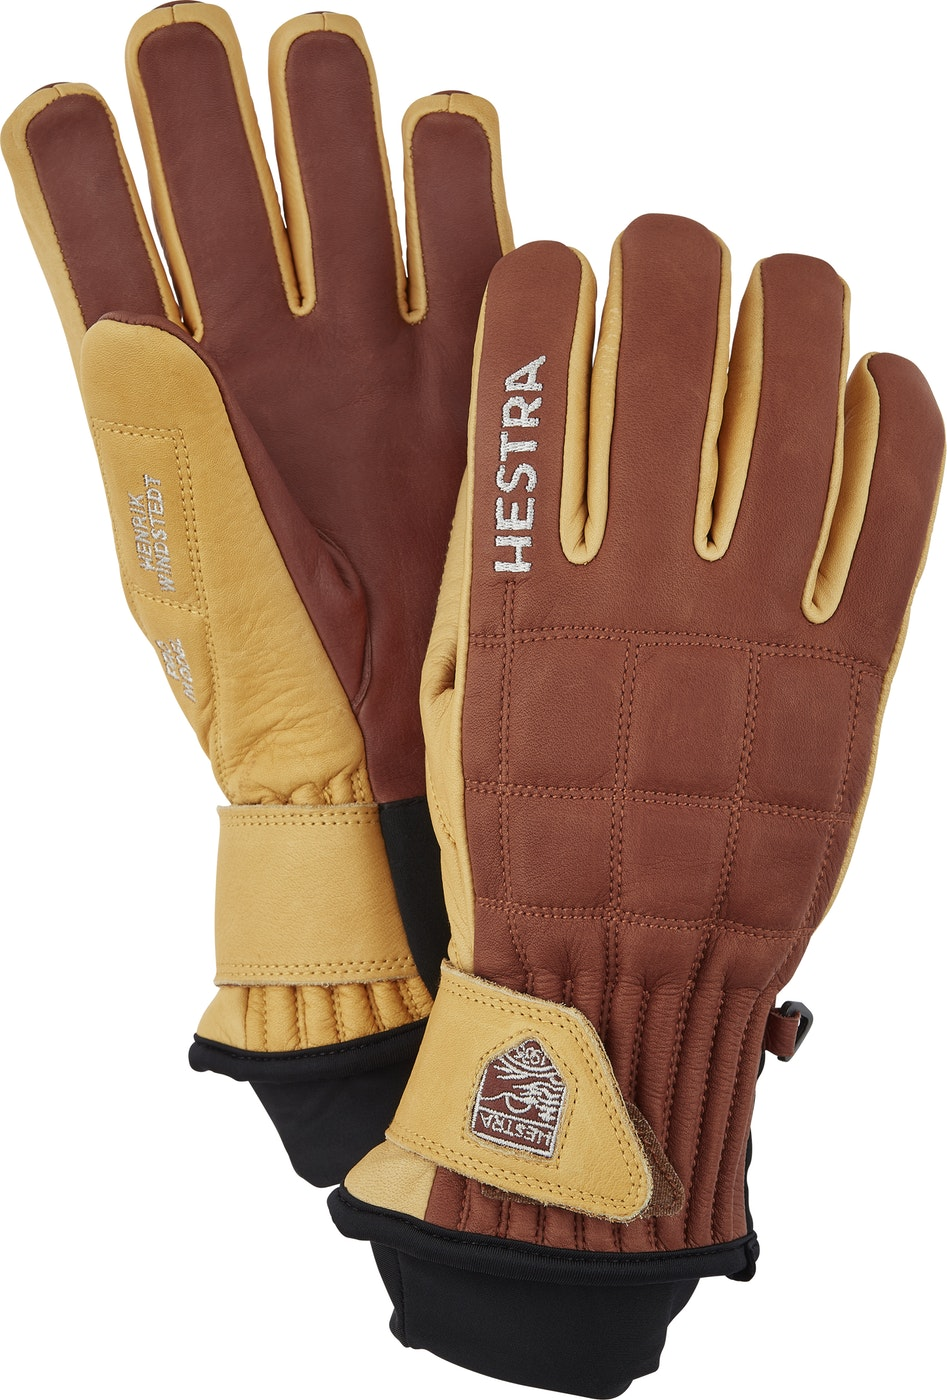 HESTRA GUANTO 30820 Henrik Leather Pro Model - (marrone) - 2020